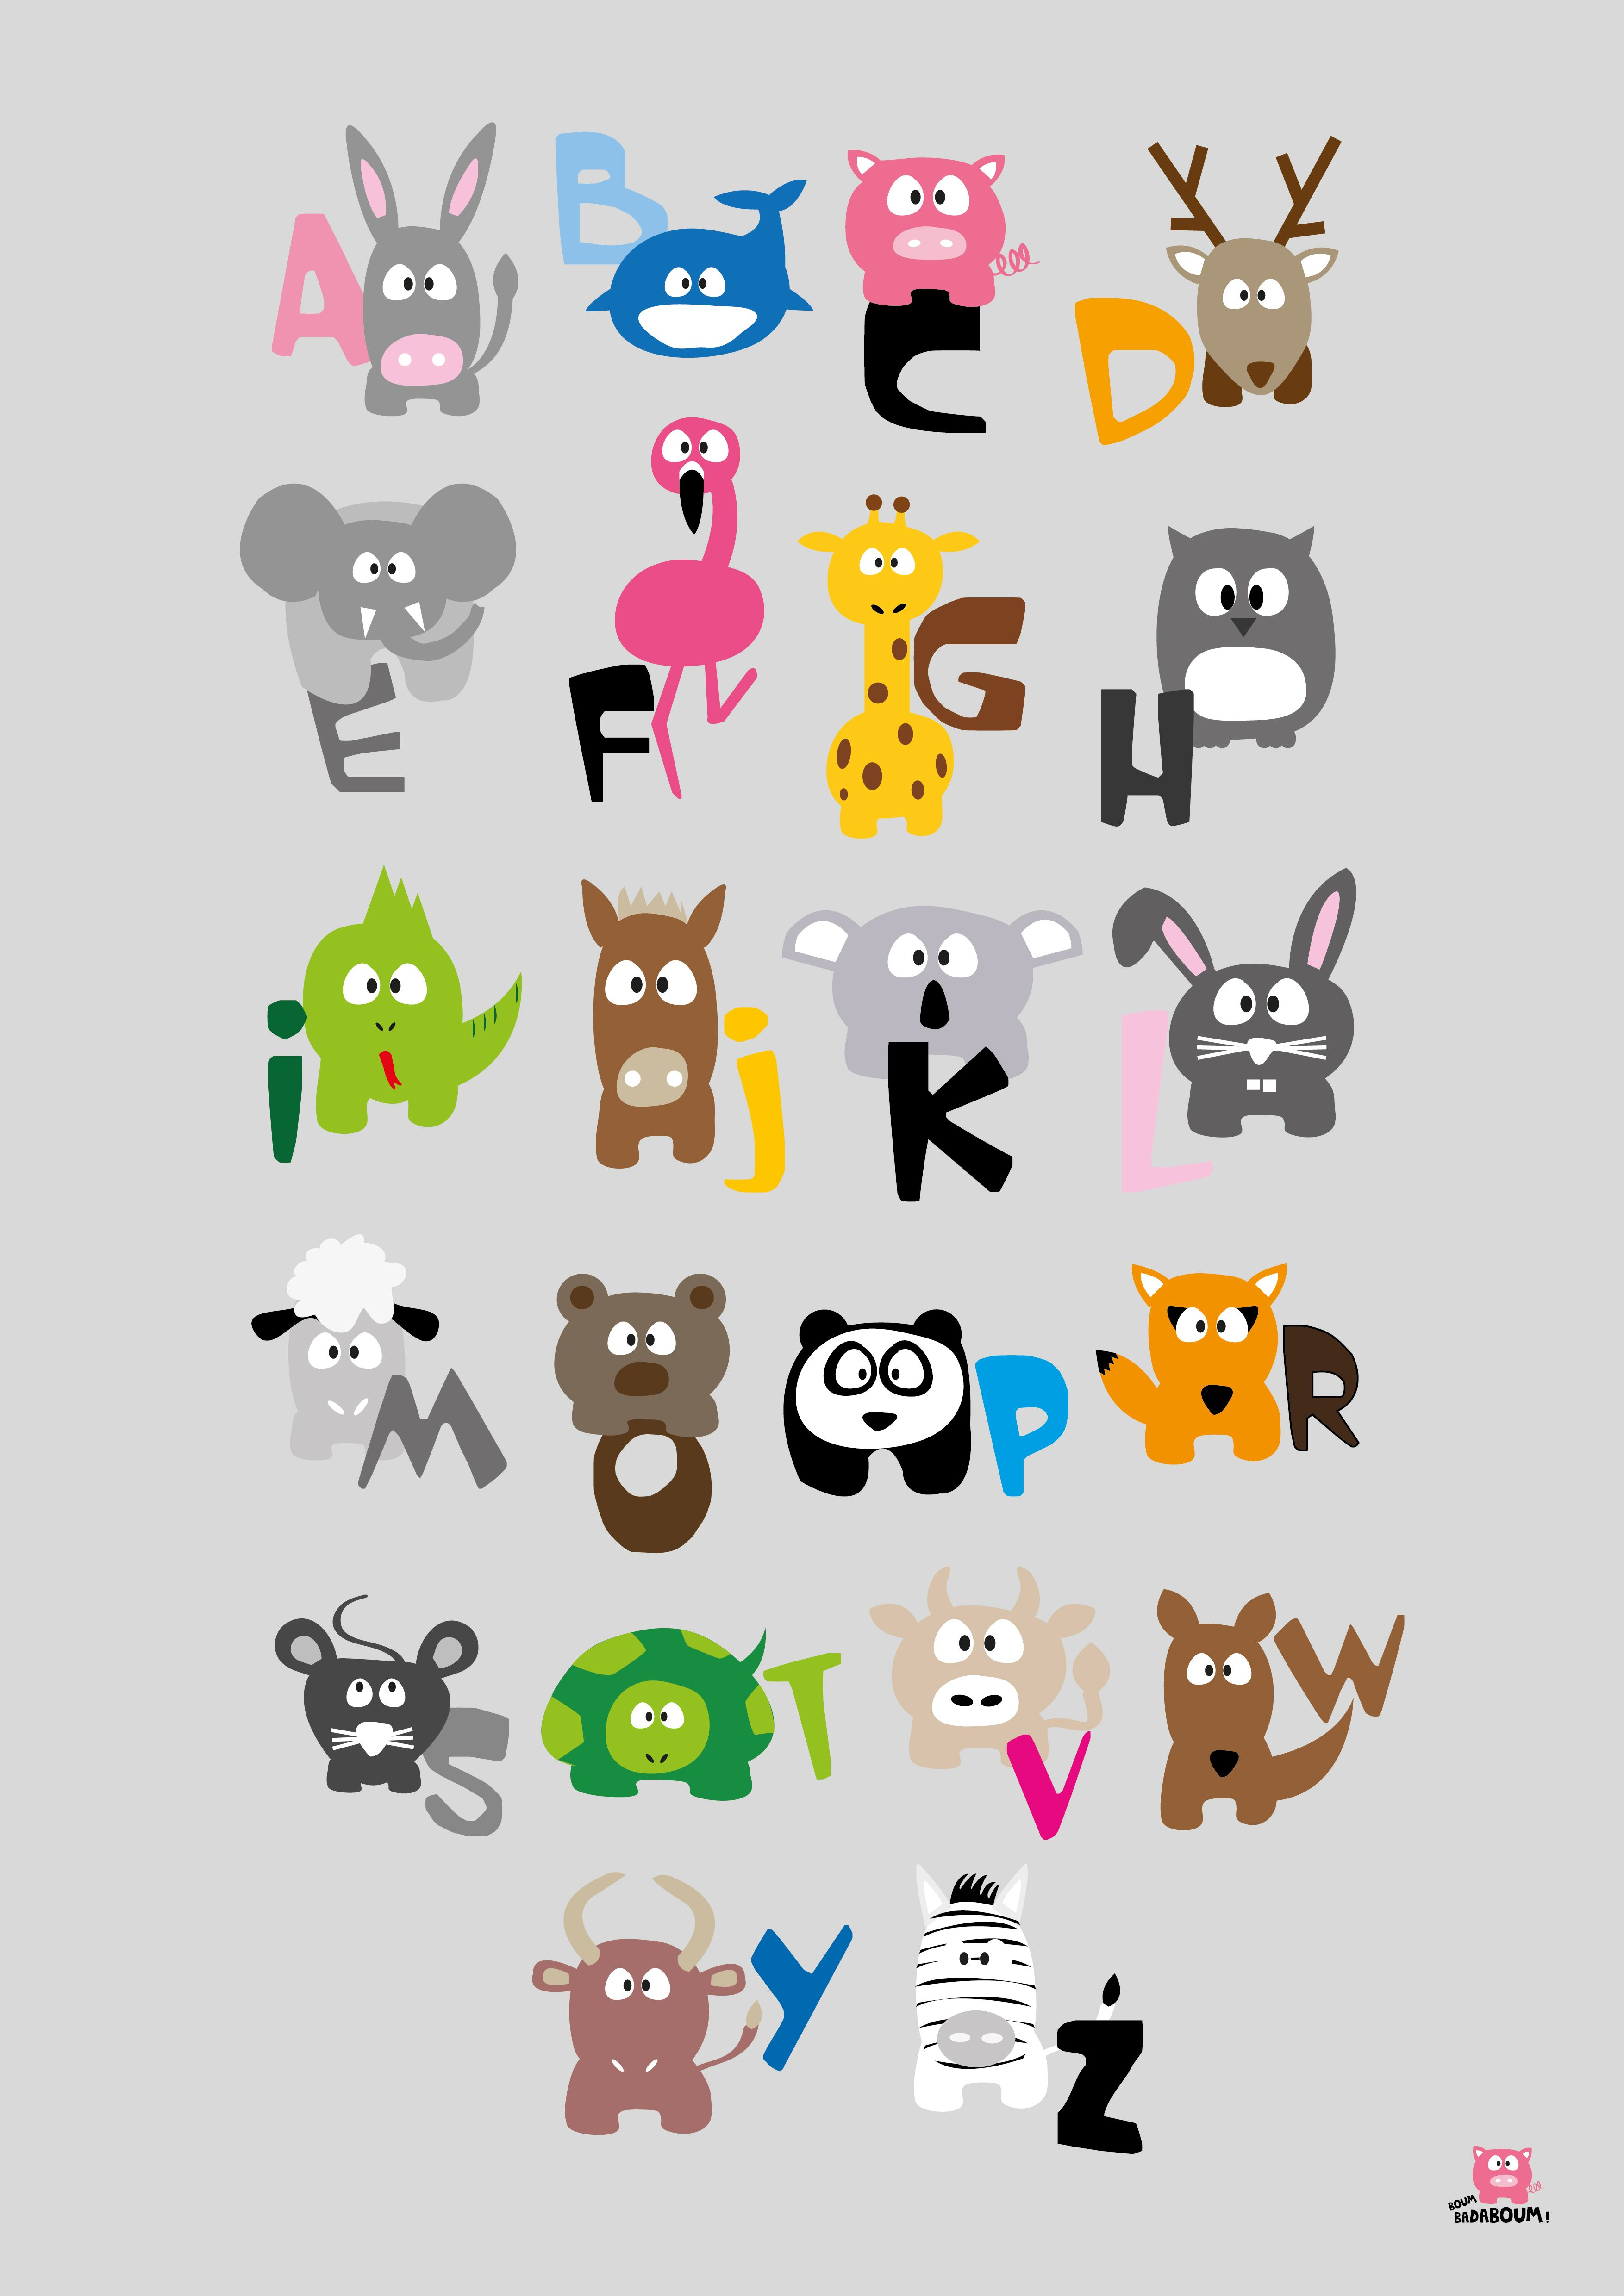 Pin by emmanuela giannadaki on l3 l4 ab c daire - Coloriage alphabet animaux ...